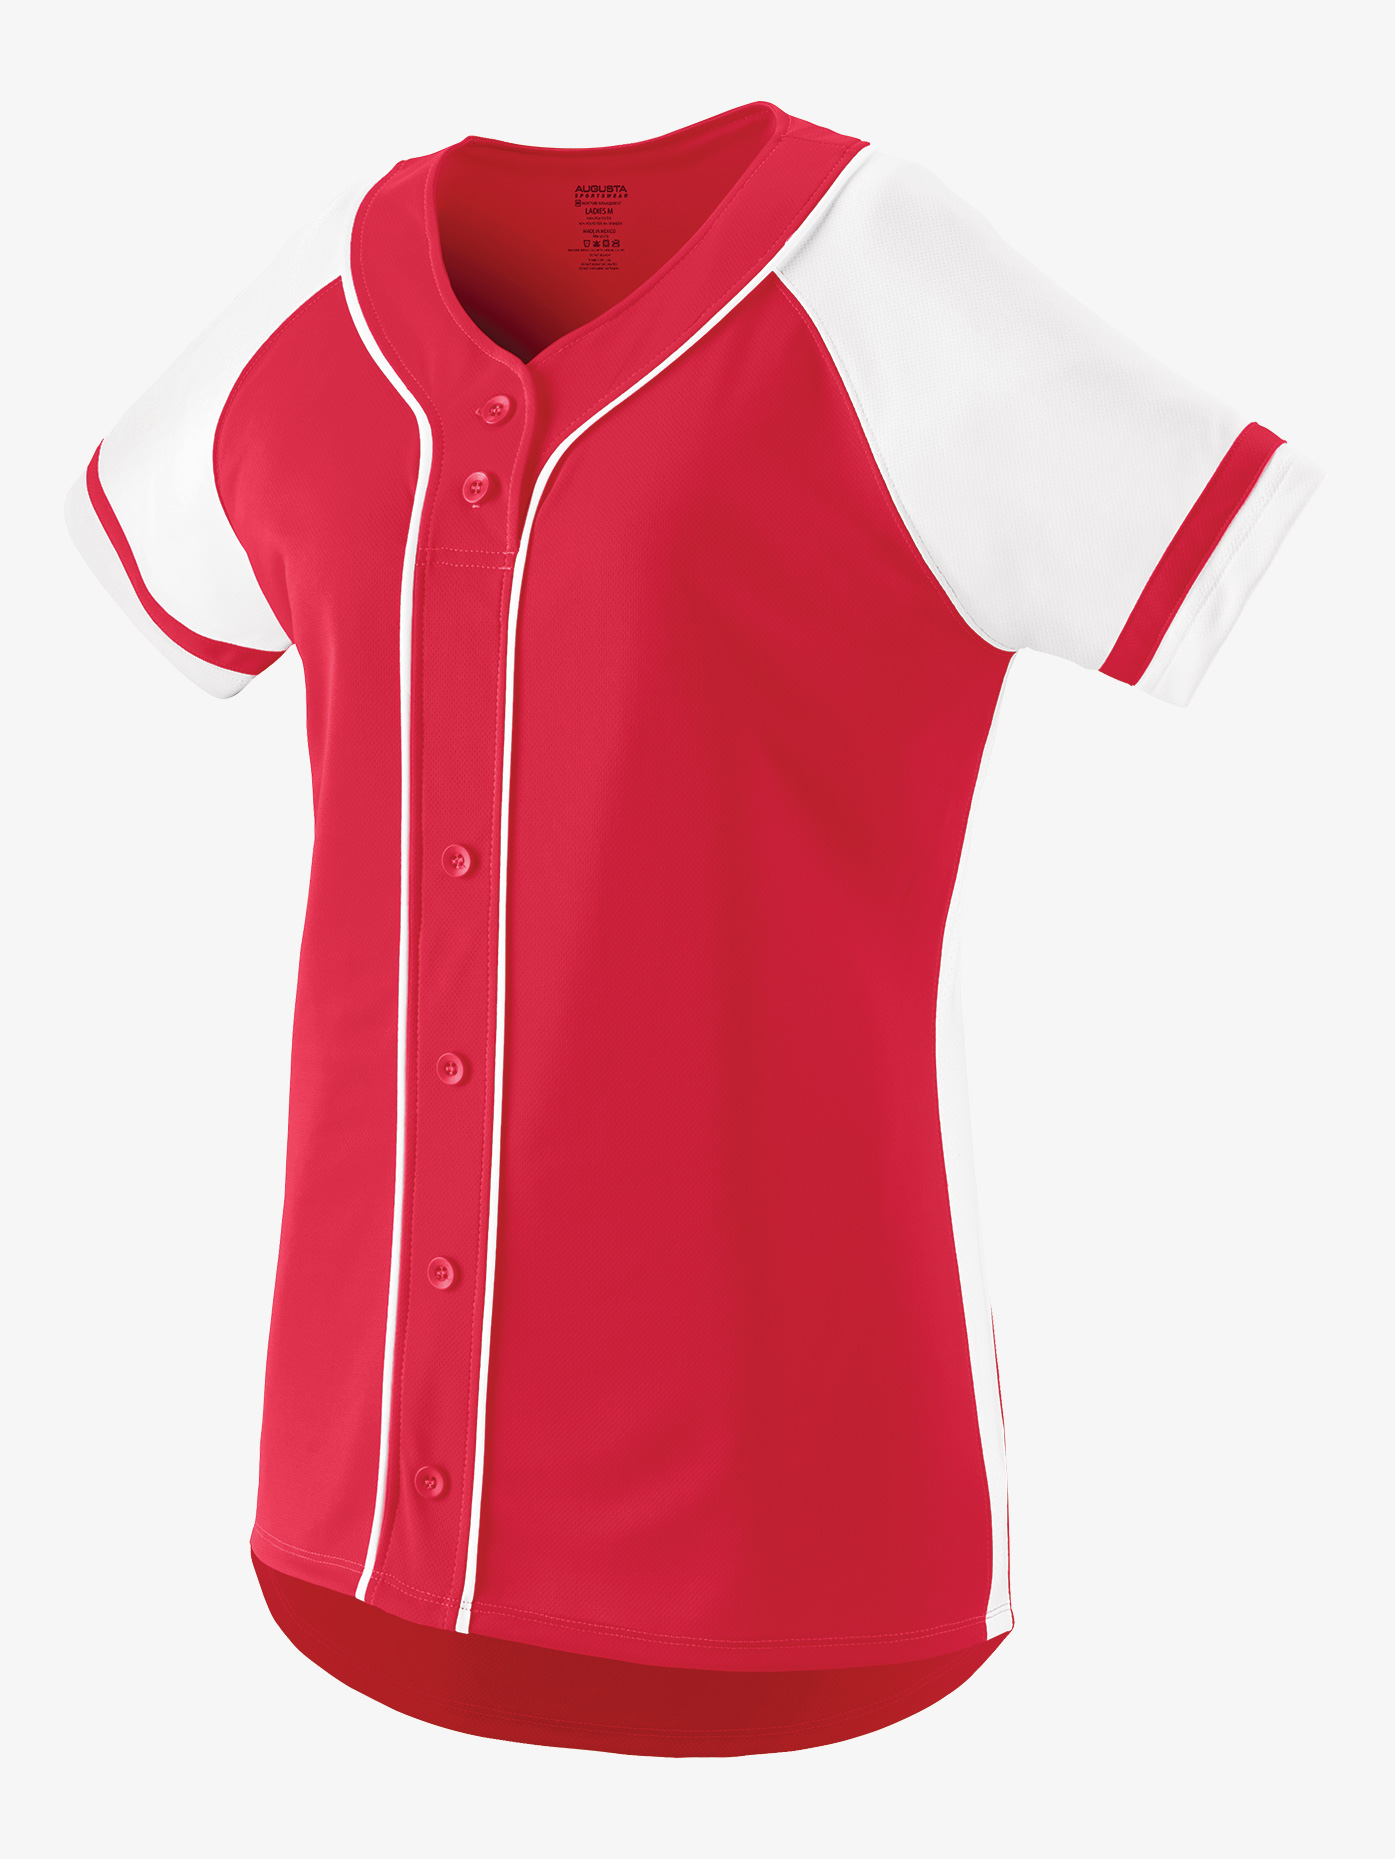 Augusta Girls Softball Style Jersey Top AUG1666E